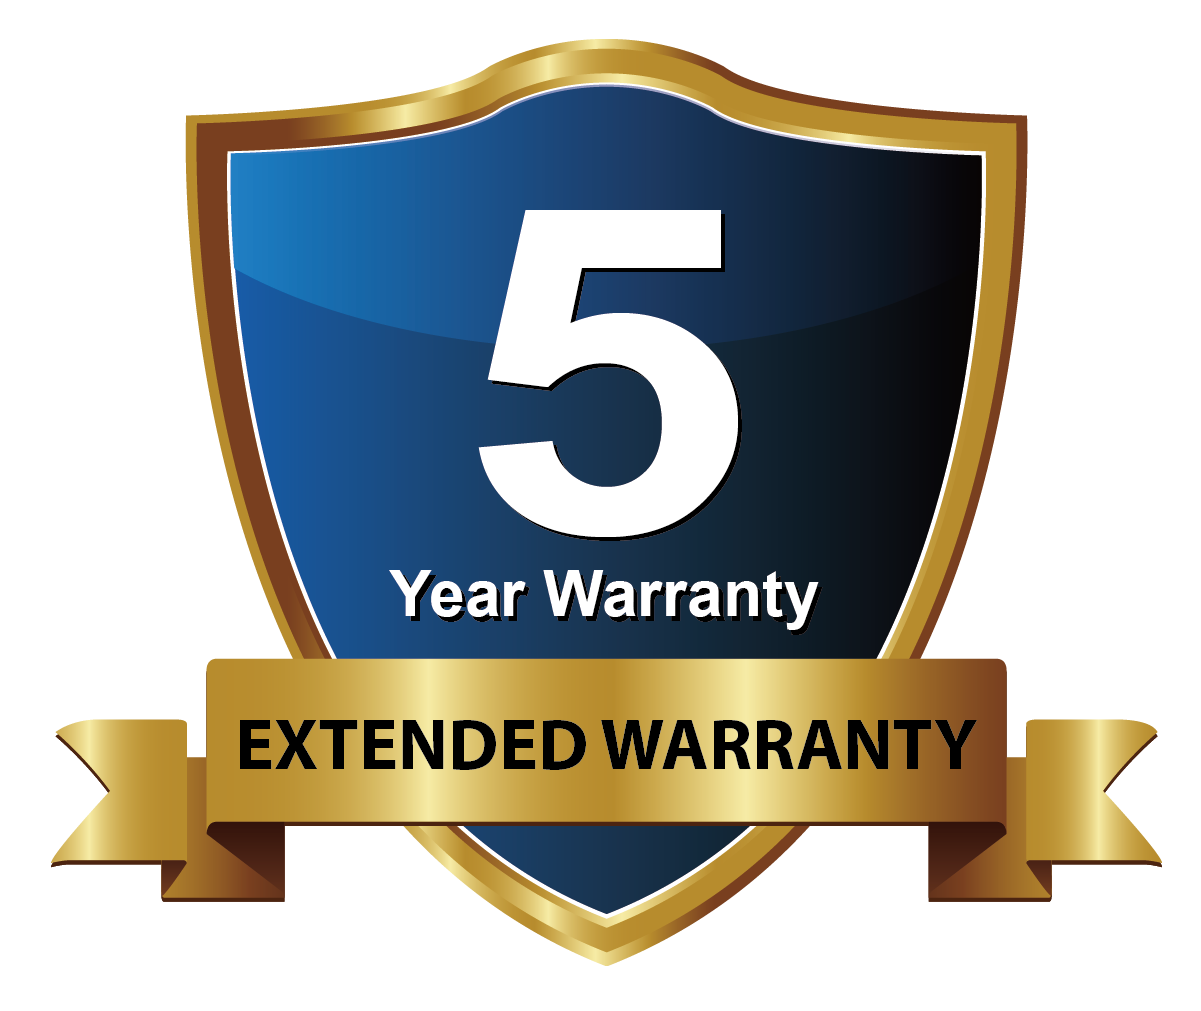 QNAP Up to 5 year warranty